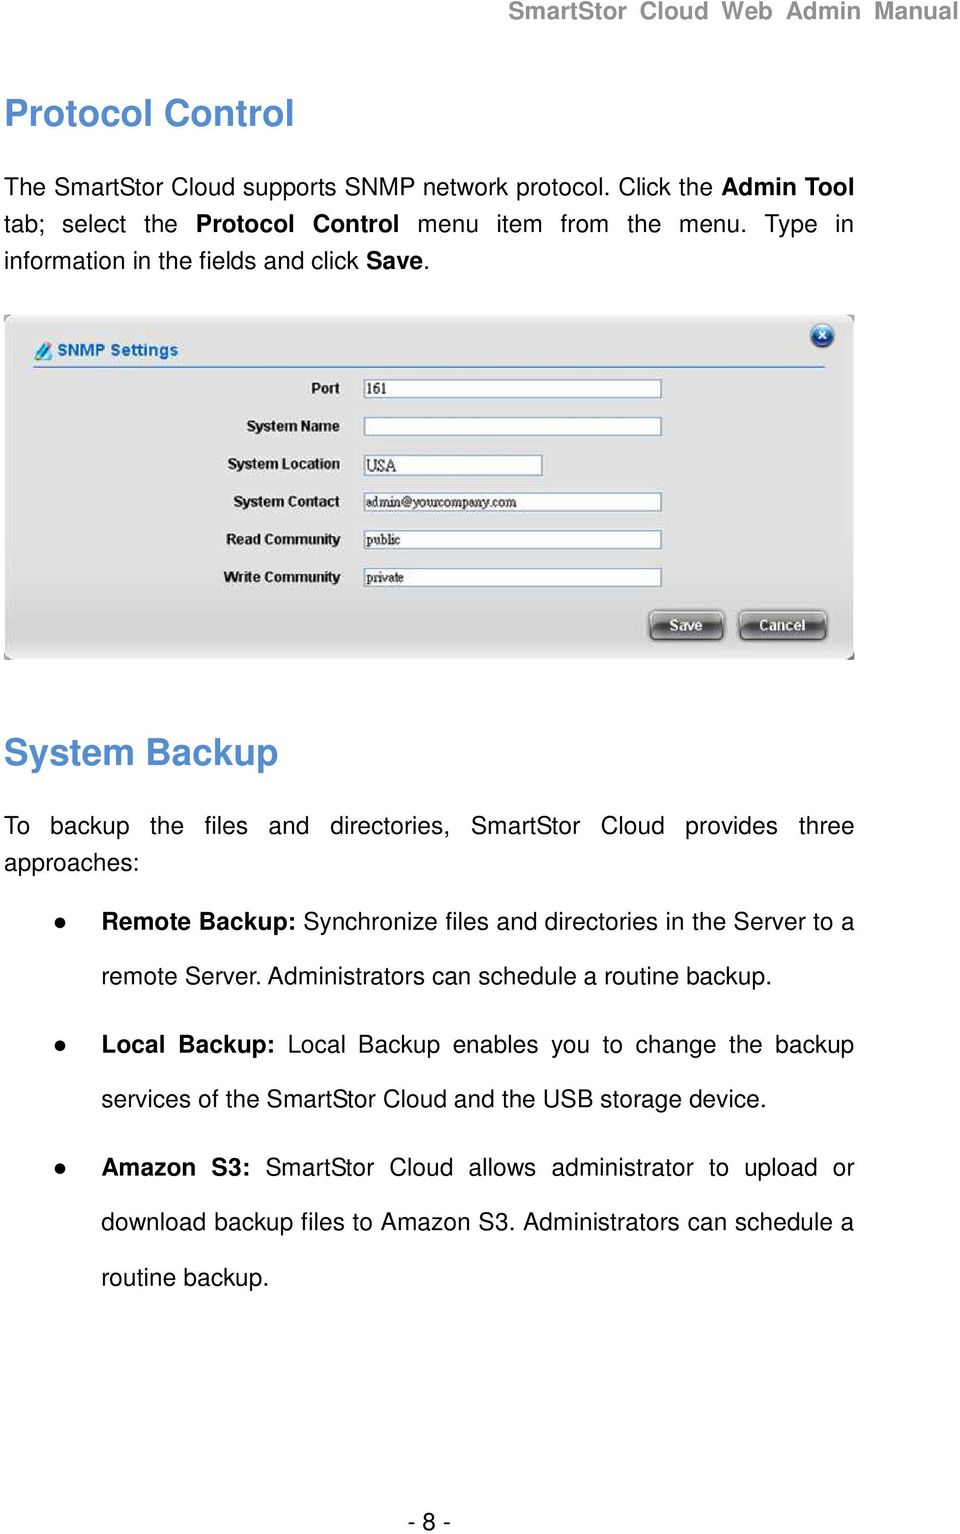 System Backup To backup the files and directories, SmartStor Cloud provides three approaches: Remote Backup: Synchronize files and directories in the Server to a remote